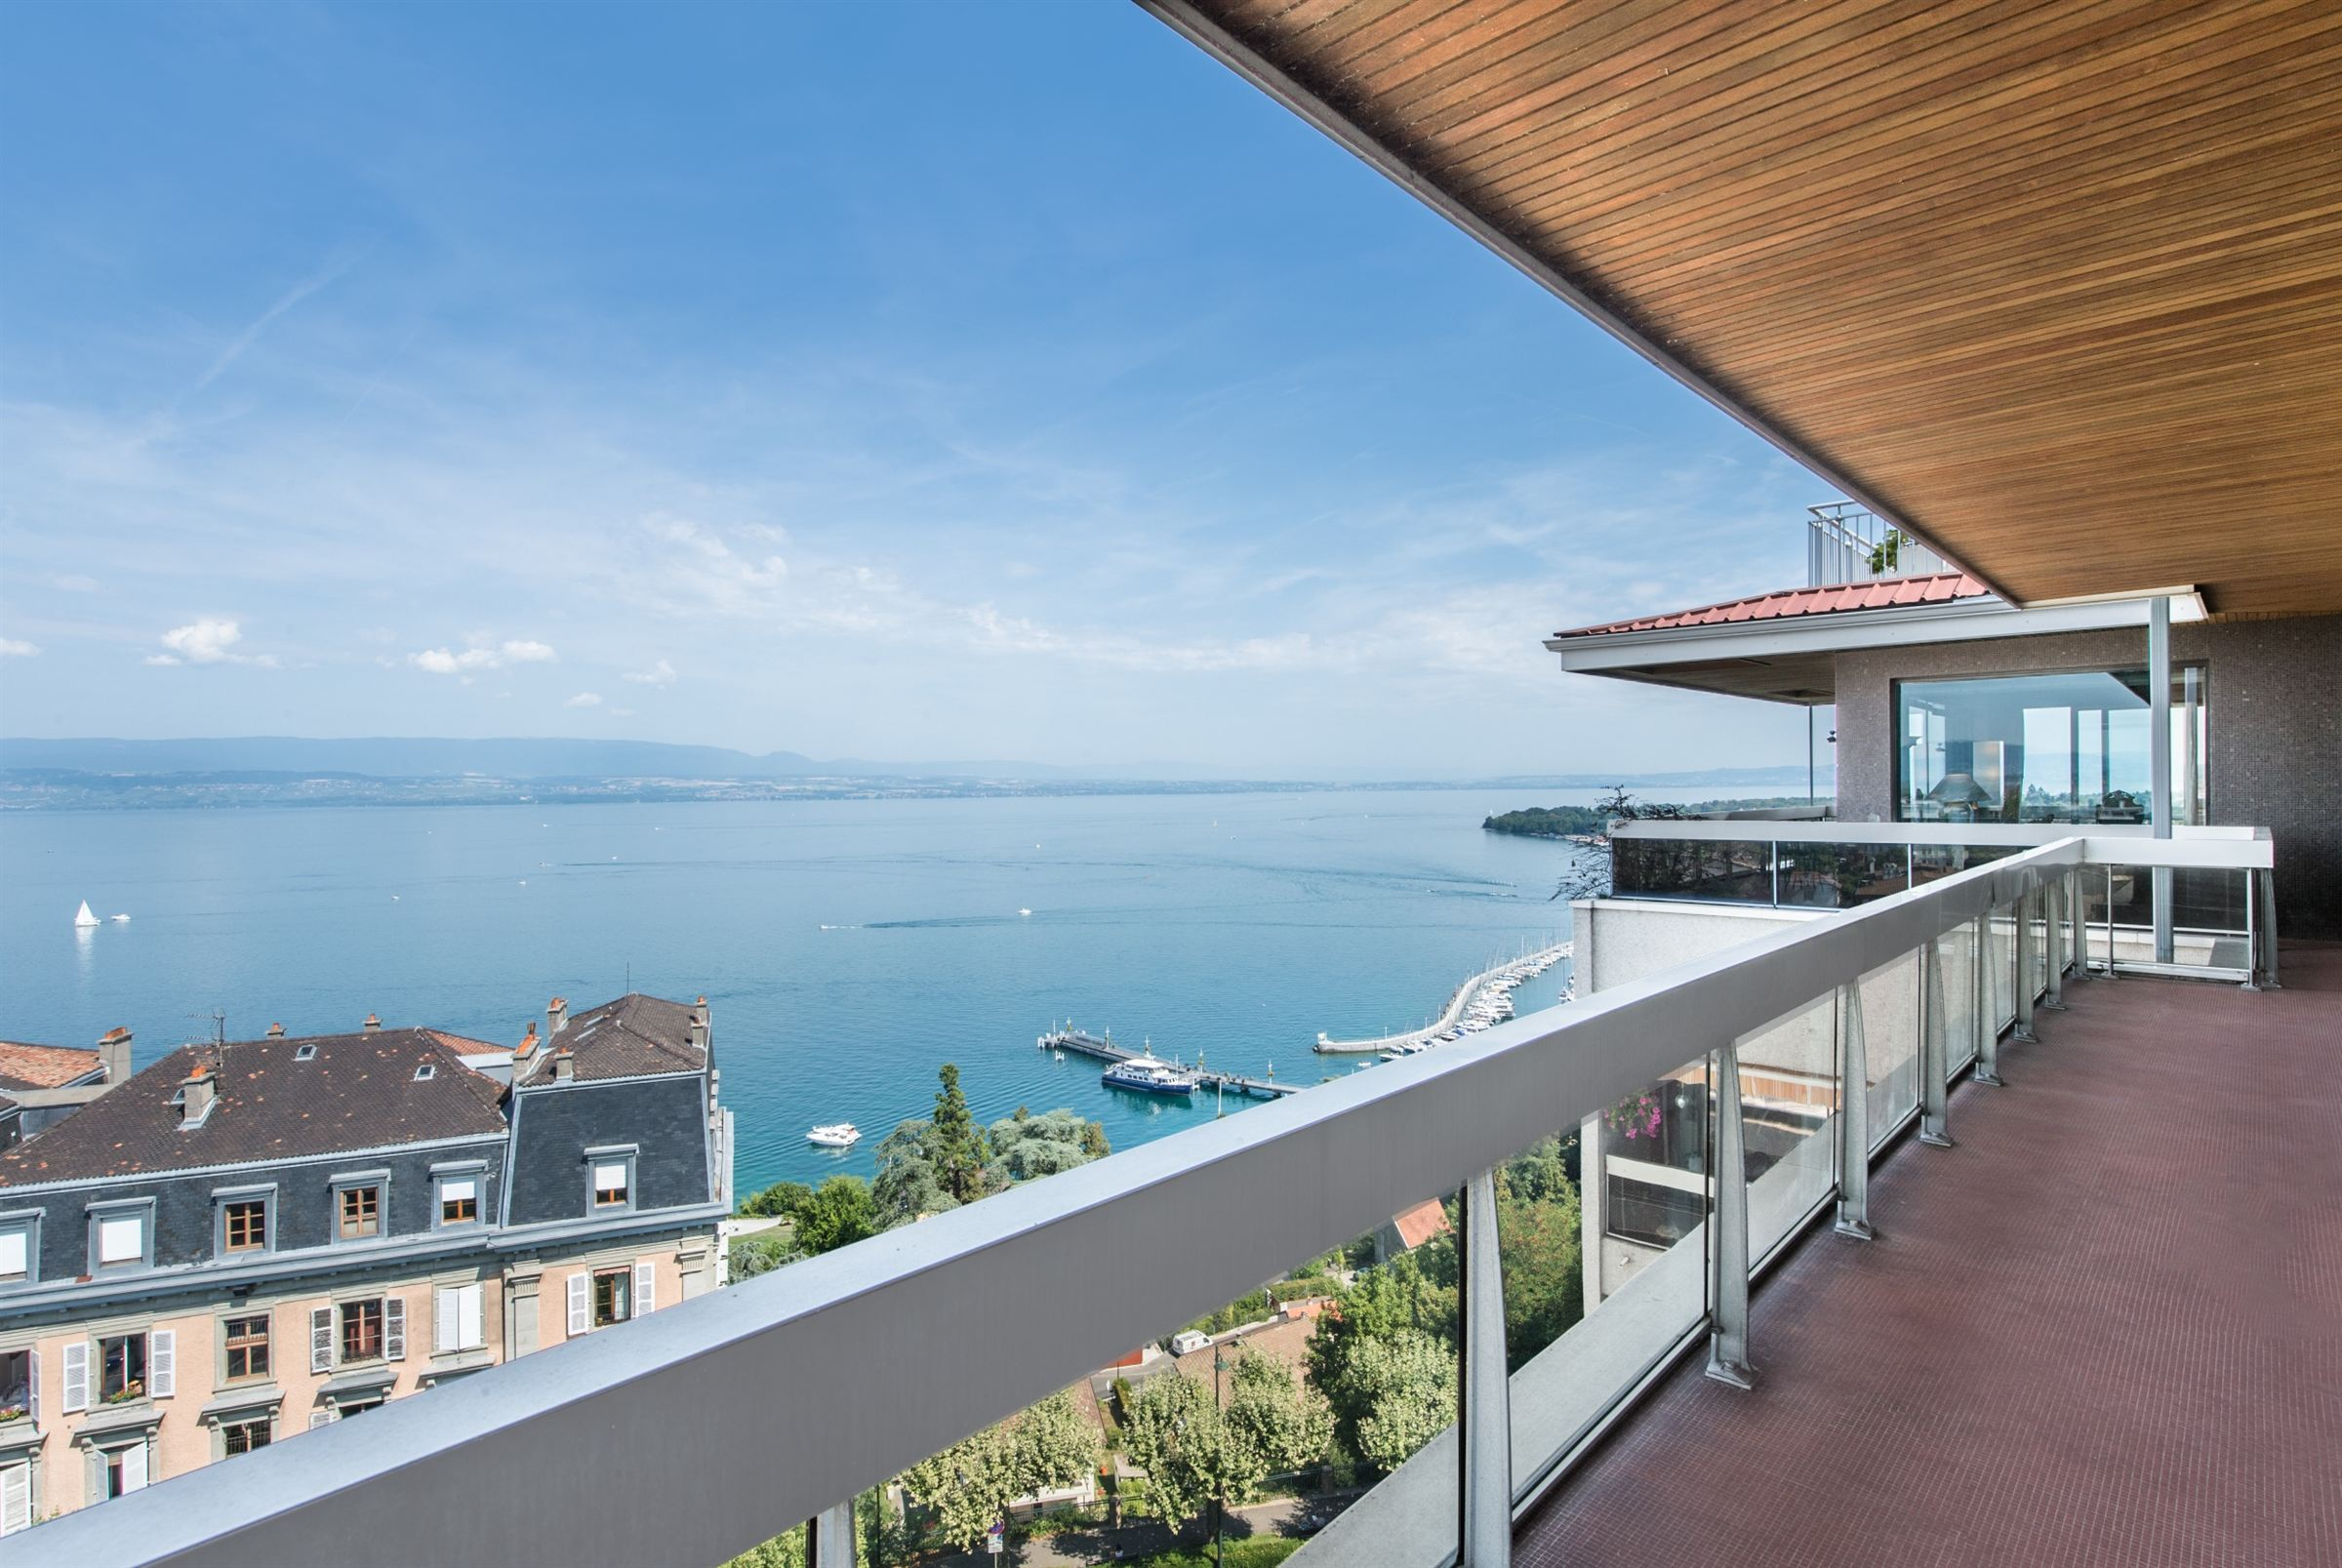 Apartment for Sale at Thonon les Bains, Prestigious apartment with panoramic view on the lake Thonon Les Bains, Haute Savoie 74200 France